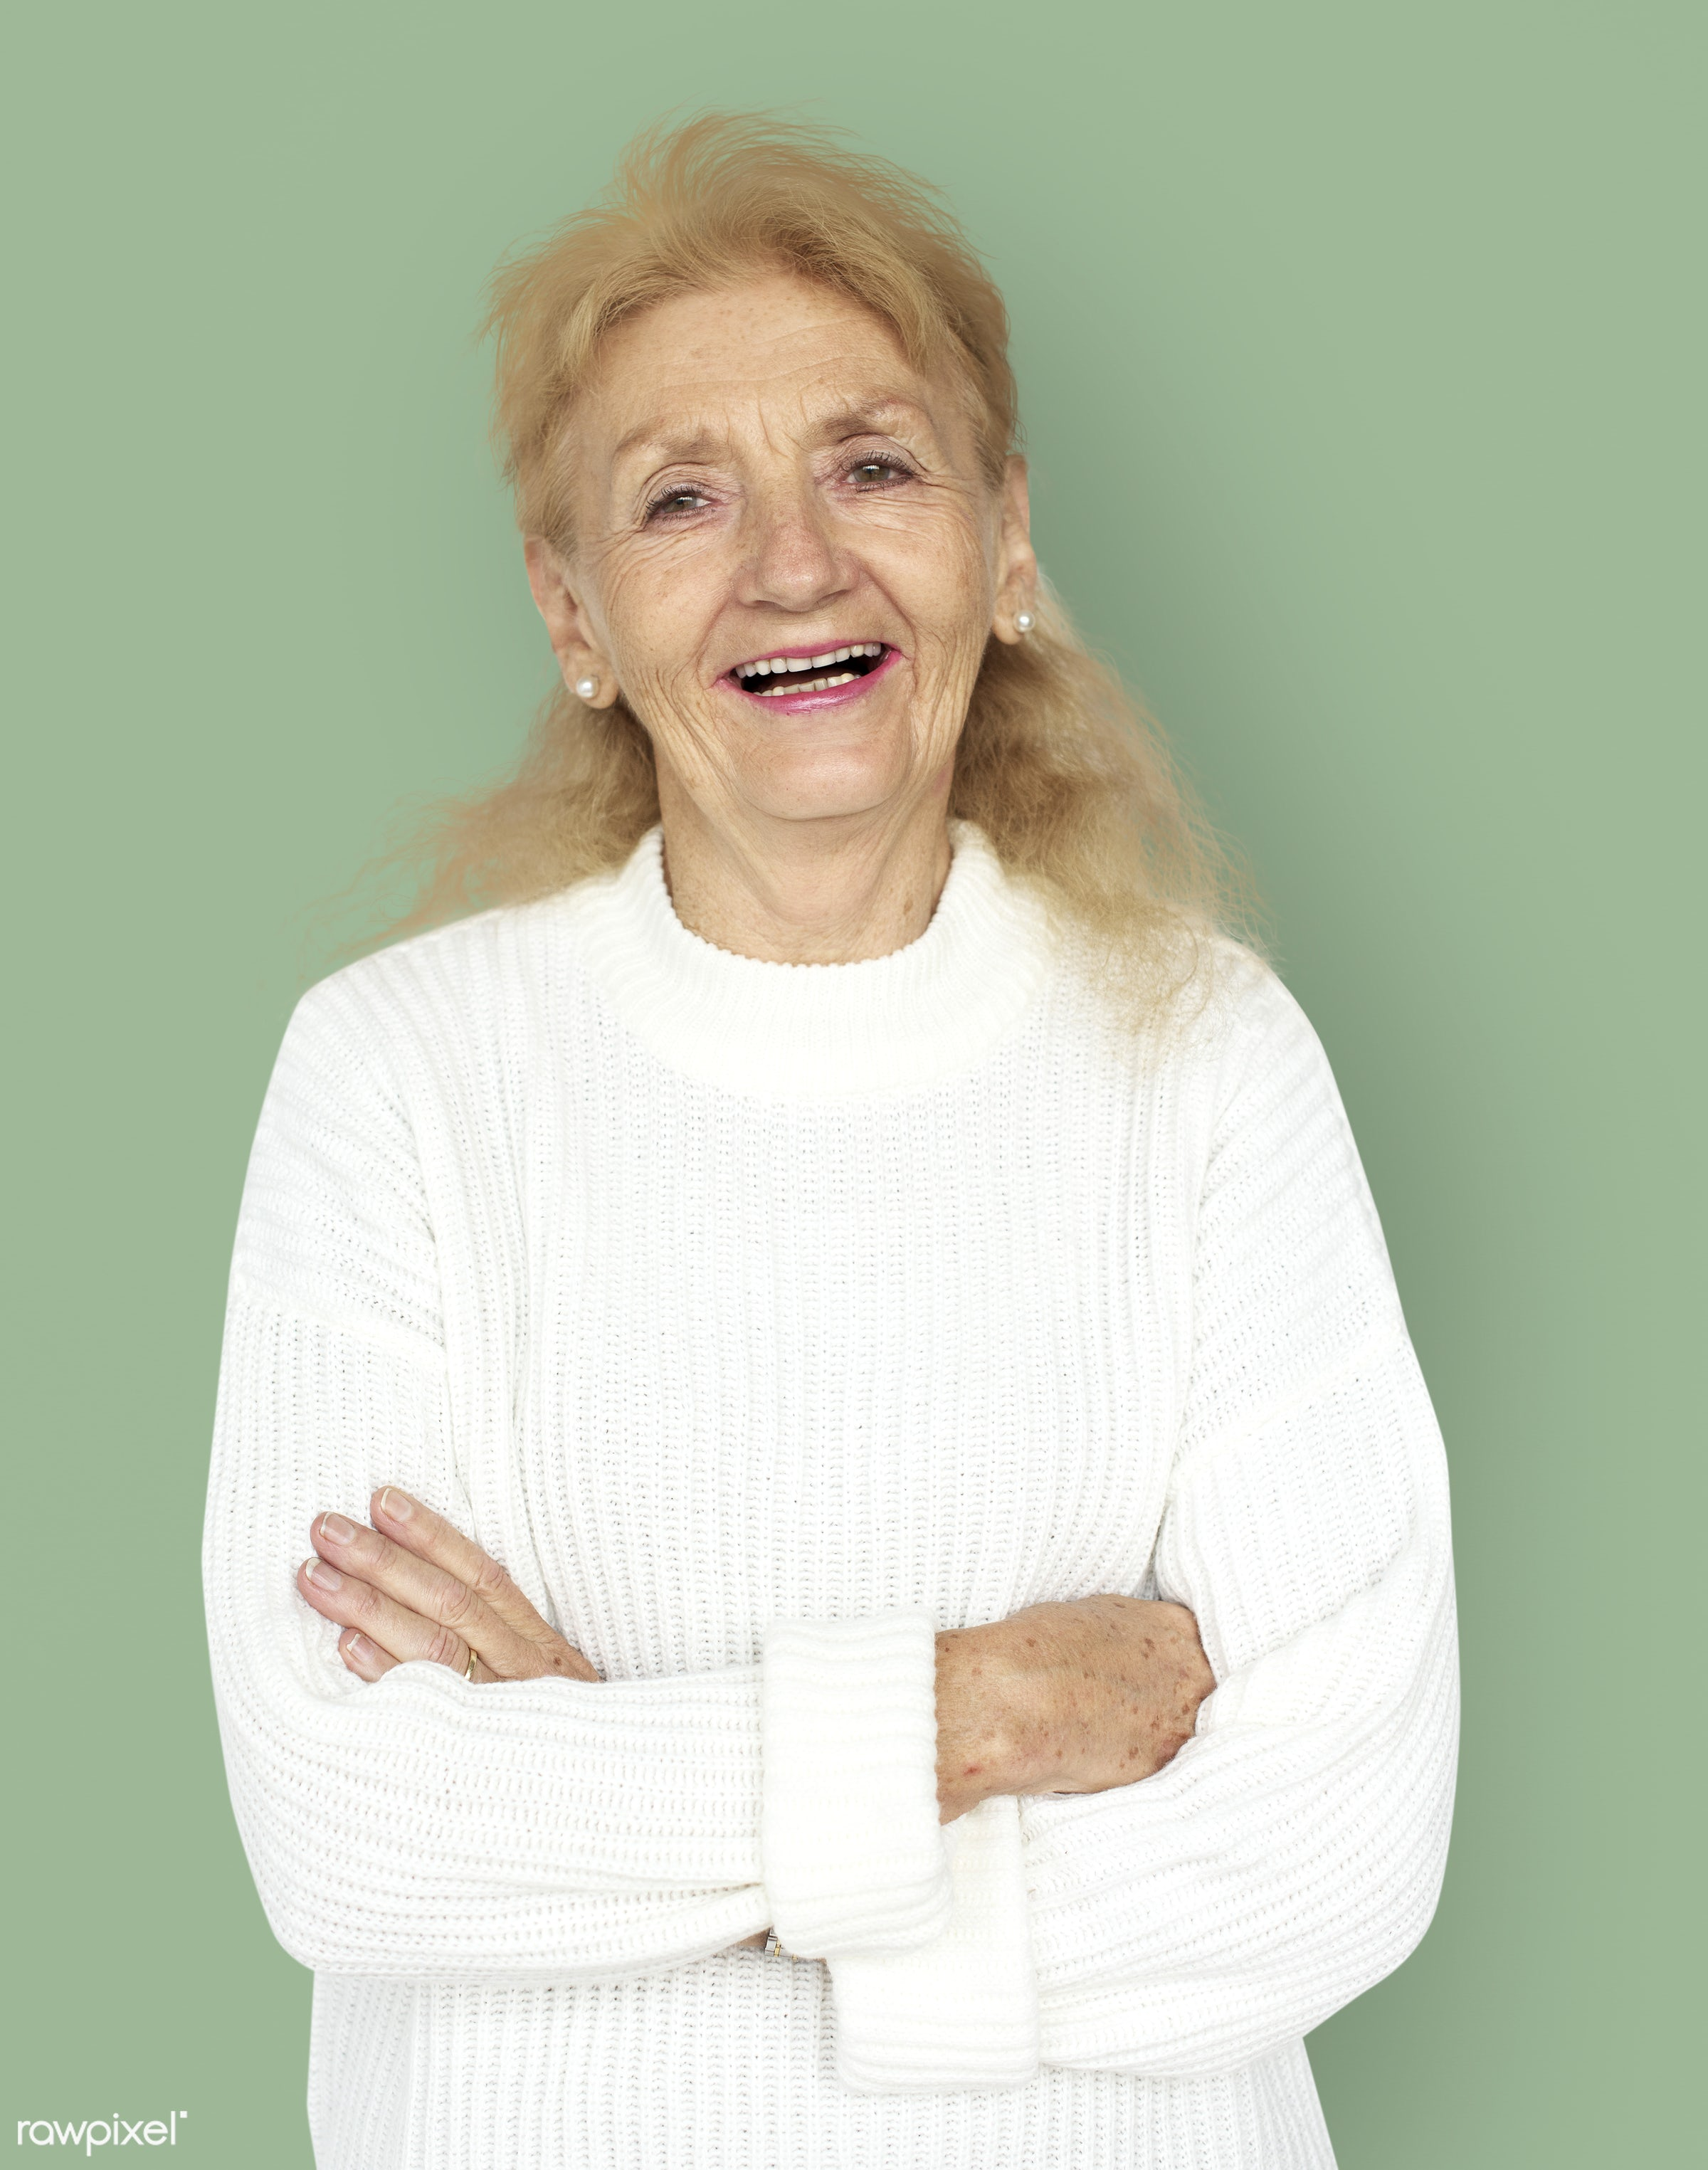 expression, studio, person, freedom, relax, people, caucasian, retirement, woman, lifestyle, westerner, positive, cheerful,...